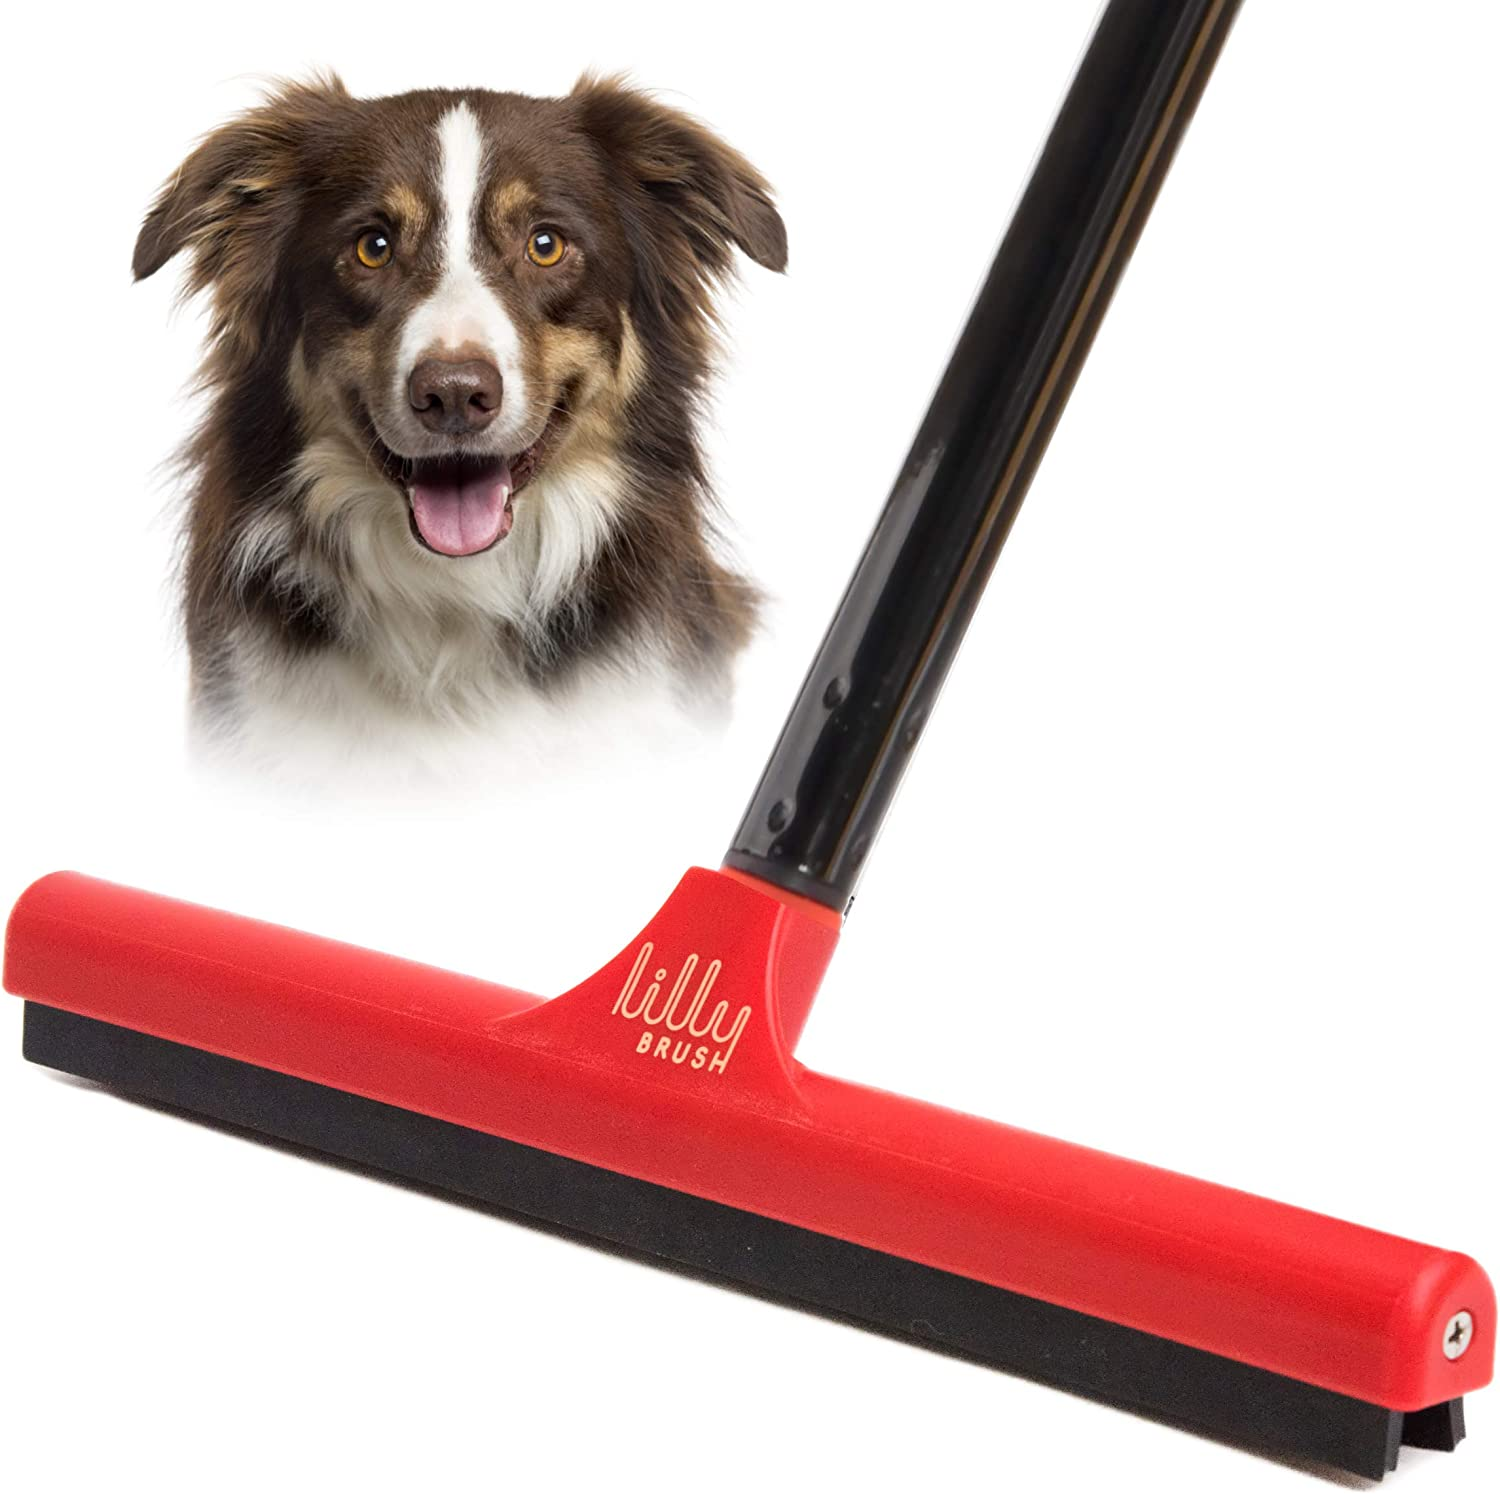 Amazon Com Lilly Brush Mighty Pet Hair Detailer With 52 Sturdy Steel Handle For Removing Dog Hair And Cat Hair From Carpets And Rugs Kitchen Dining